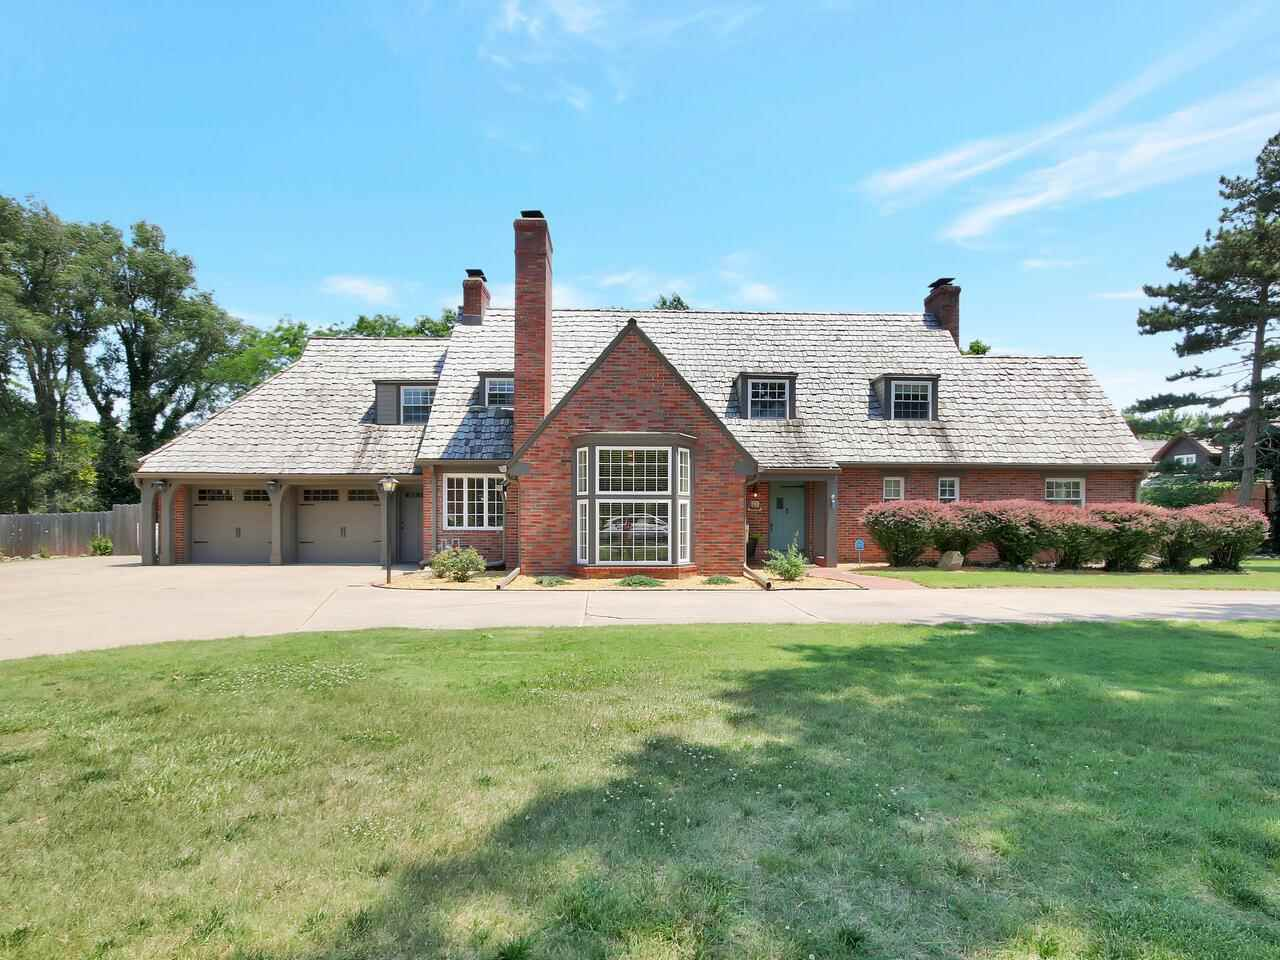 4 HAMPTON WICHITA / EASTBOROUGH Charming remodeled Eastborough home set on a large lot. Located clos